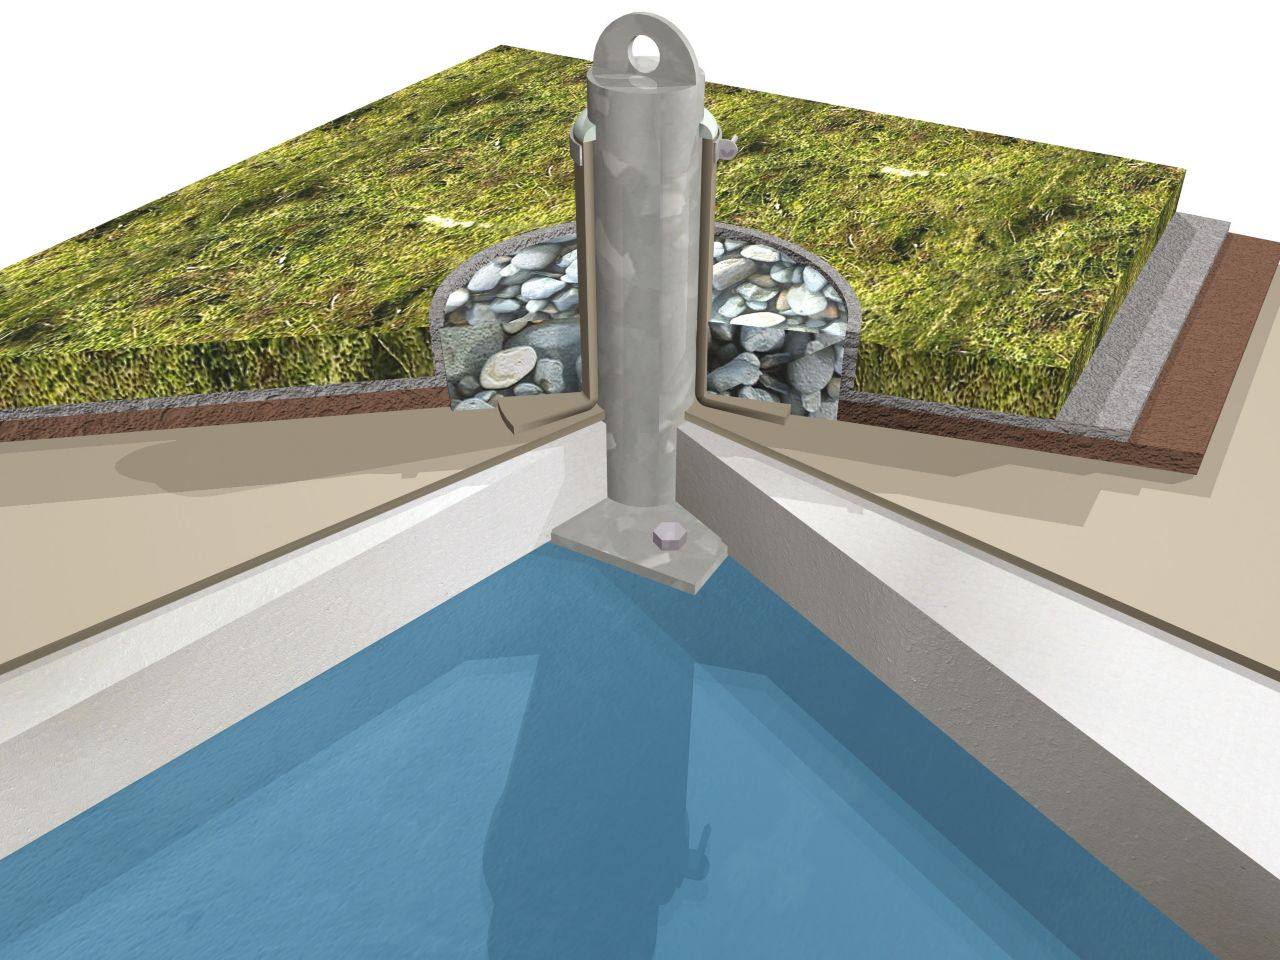 Green roof system buildup 3D rendering at fall arrest penetration